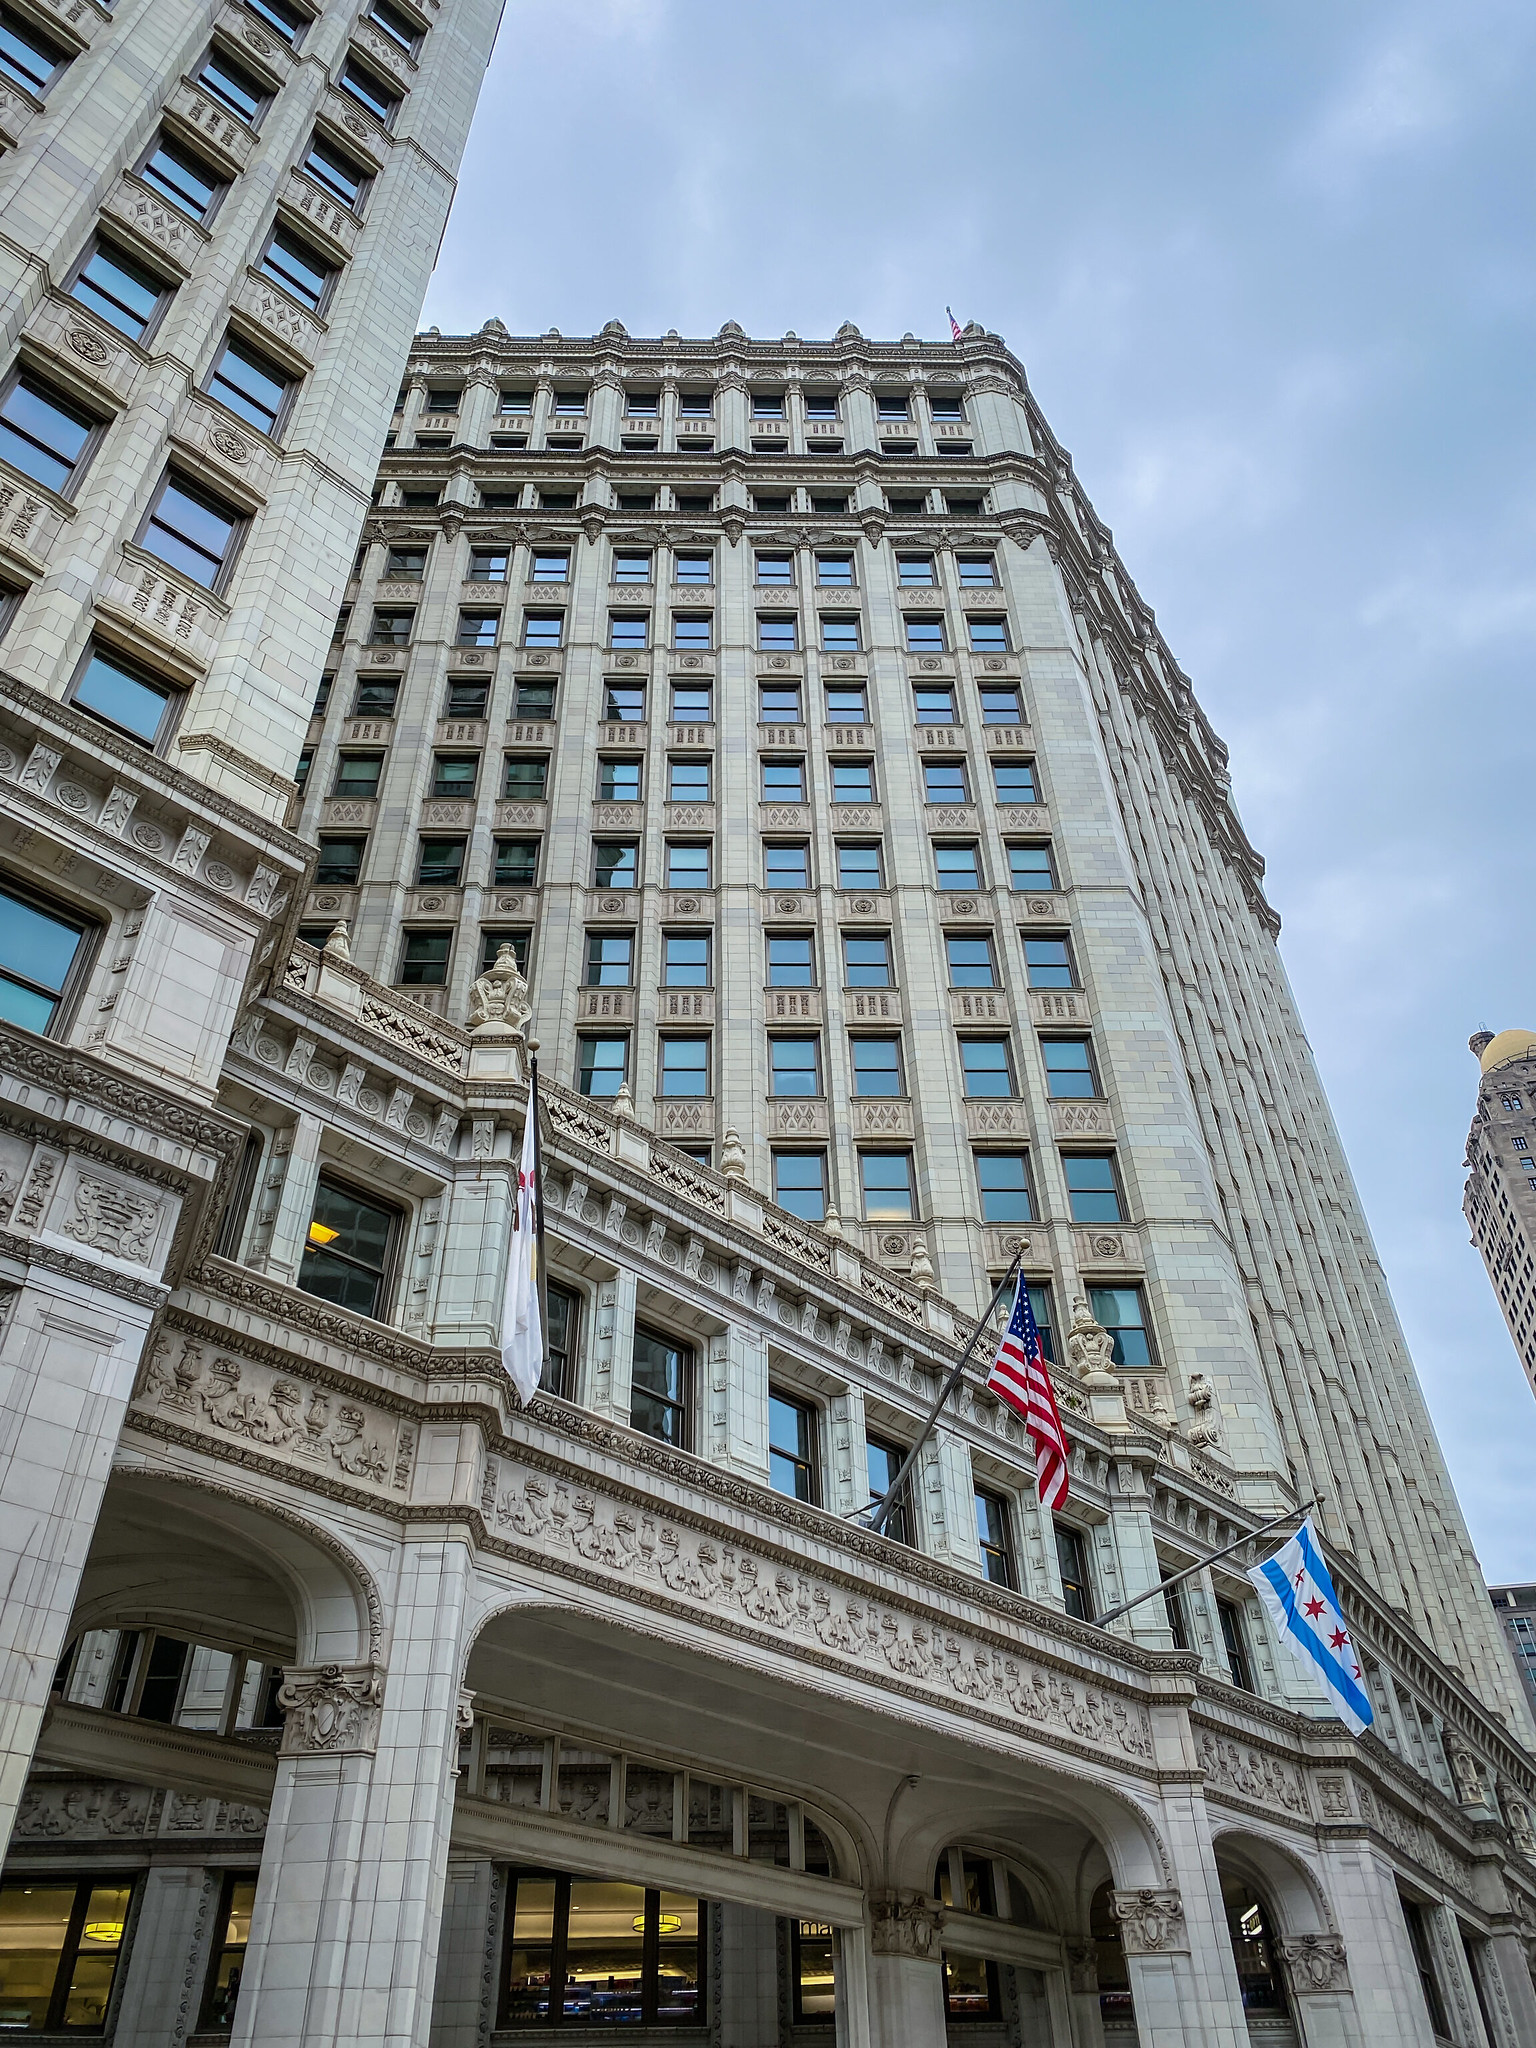 First Time In Chicago: The Perfect 3 Day Itinerary | Chicago Travel Guide | 72 Hours in Chicago | 3 Days in Chicago Itinerary | What to do in Chicago | Where to Stay in Chicago | Ultimate Chicago Bucket List | Top Things to Do in Chicago | First Timer's Guide to Chicago | Chicago Architecture